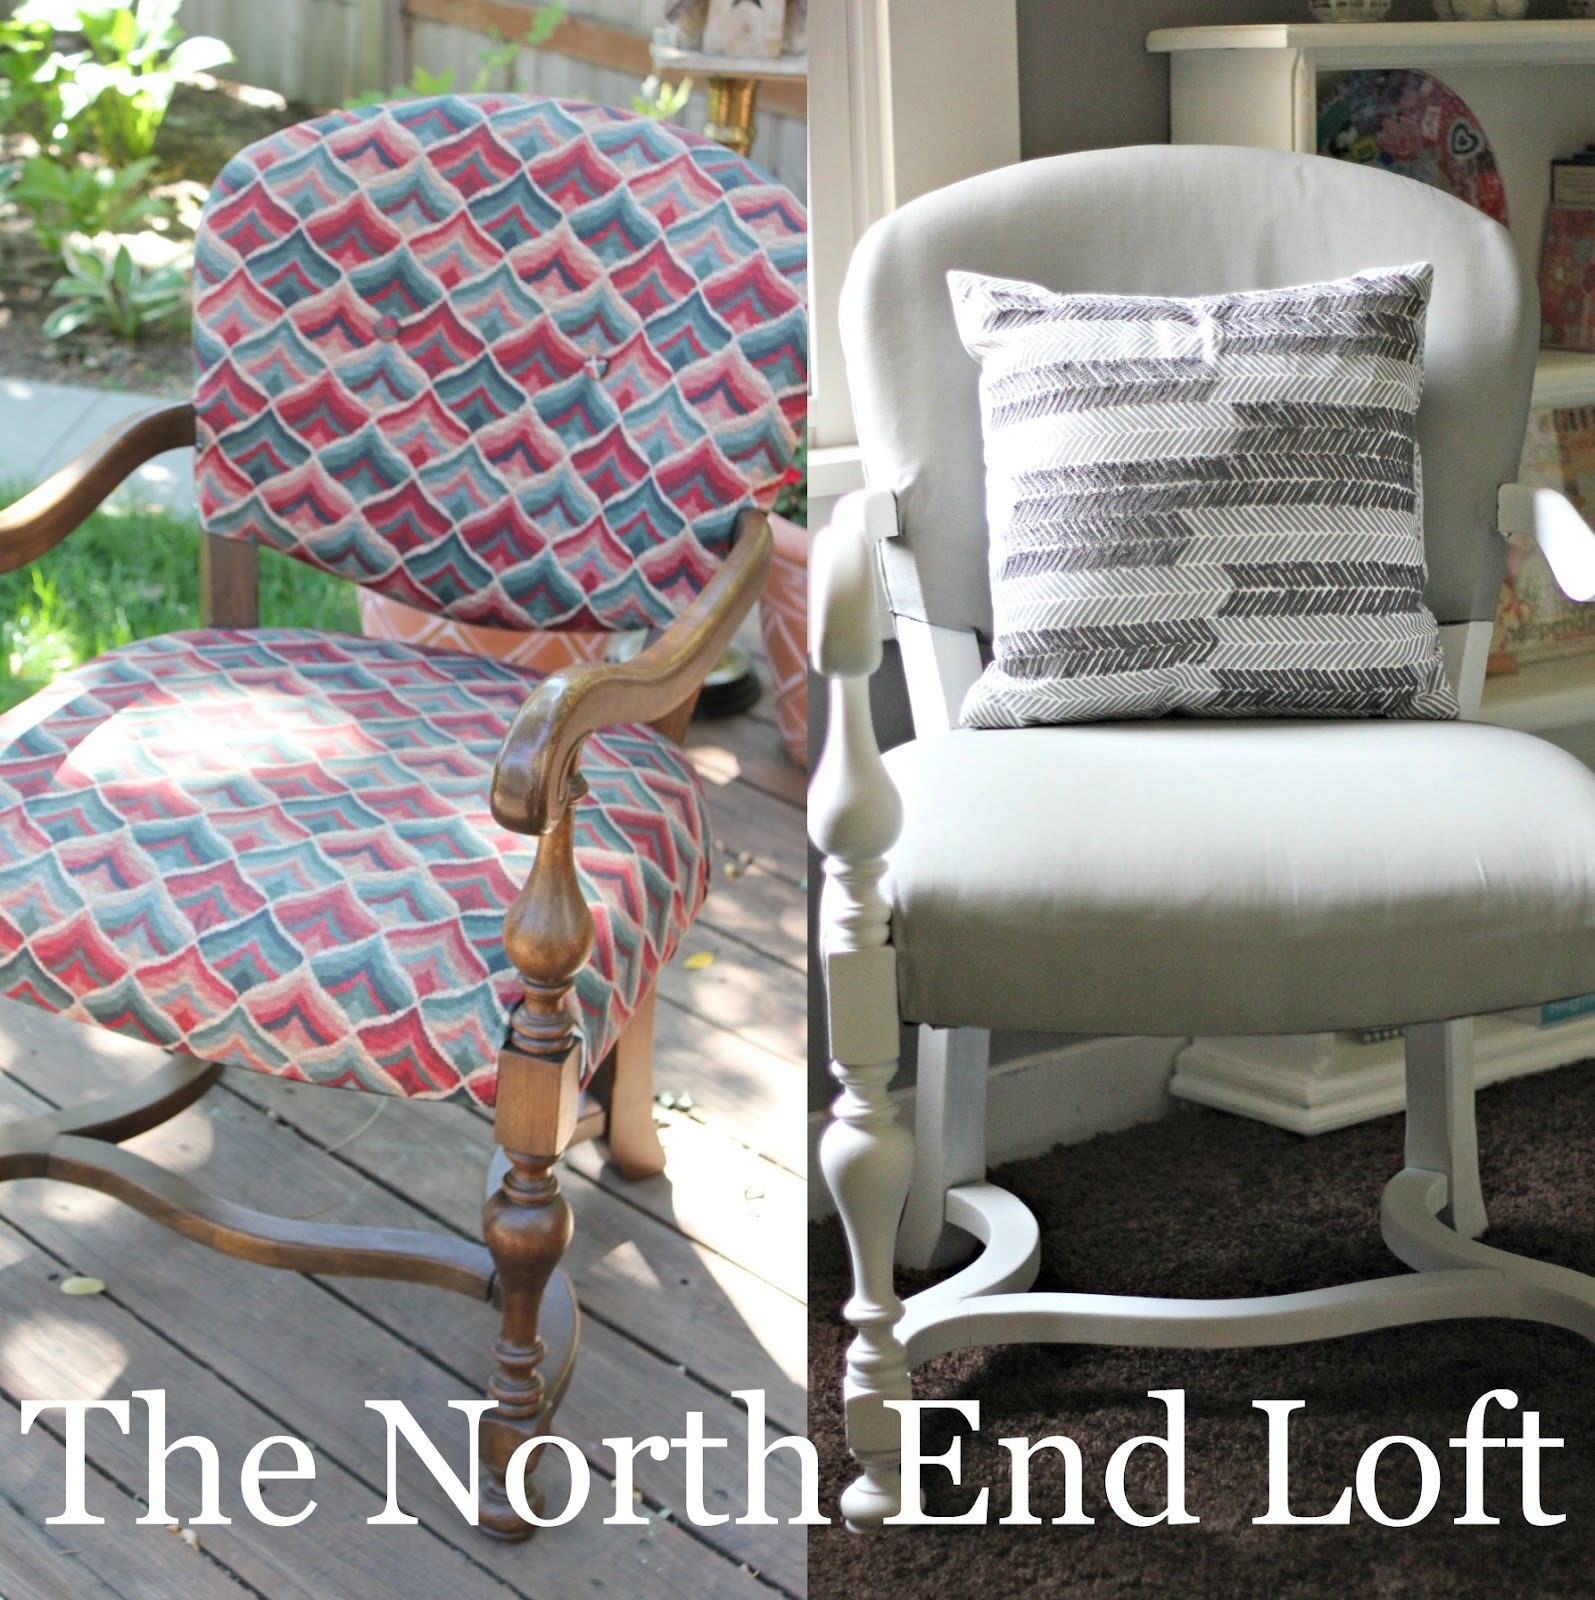 The north end loft: painted upholstery